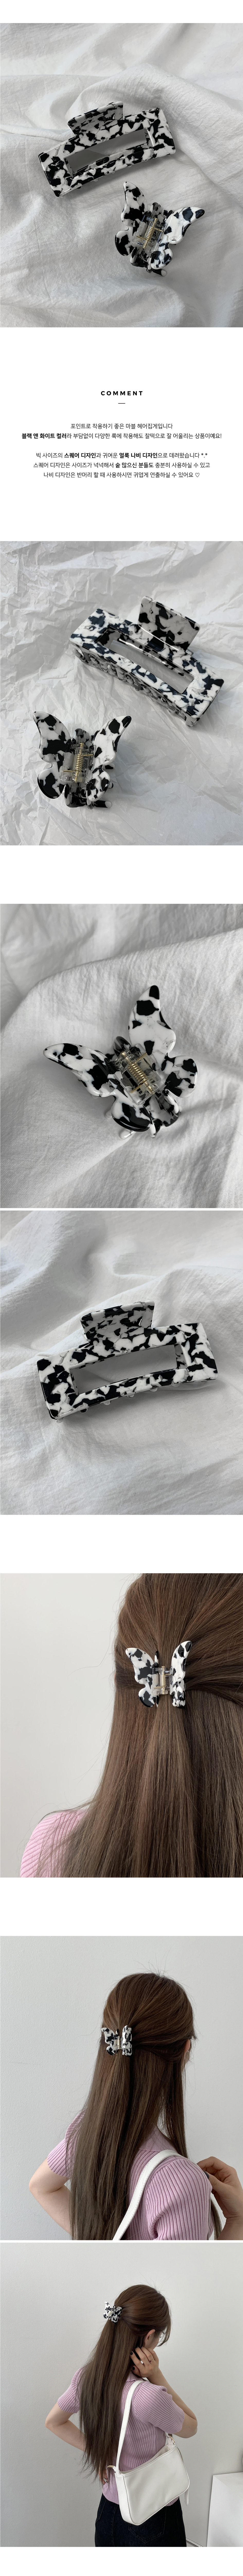 Core Marble Cellulose Spotted Hair Clips